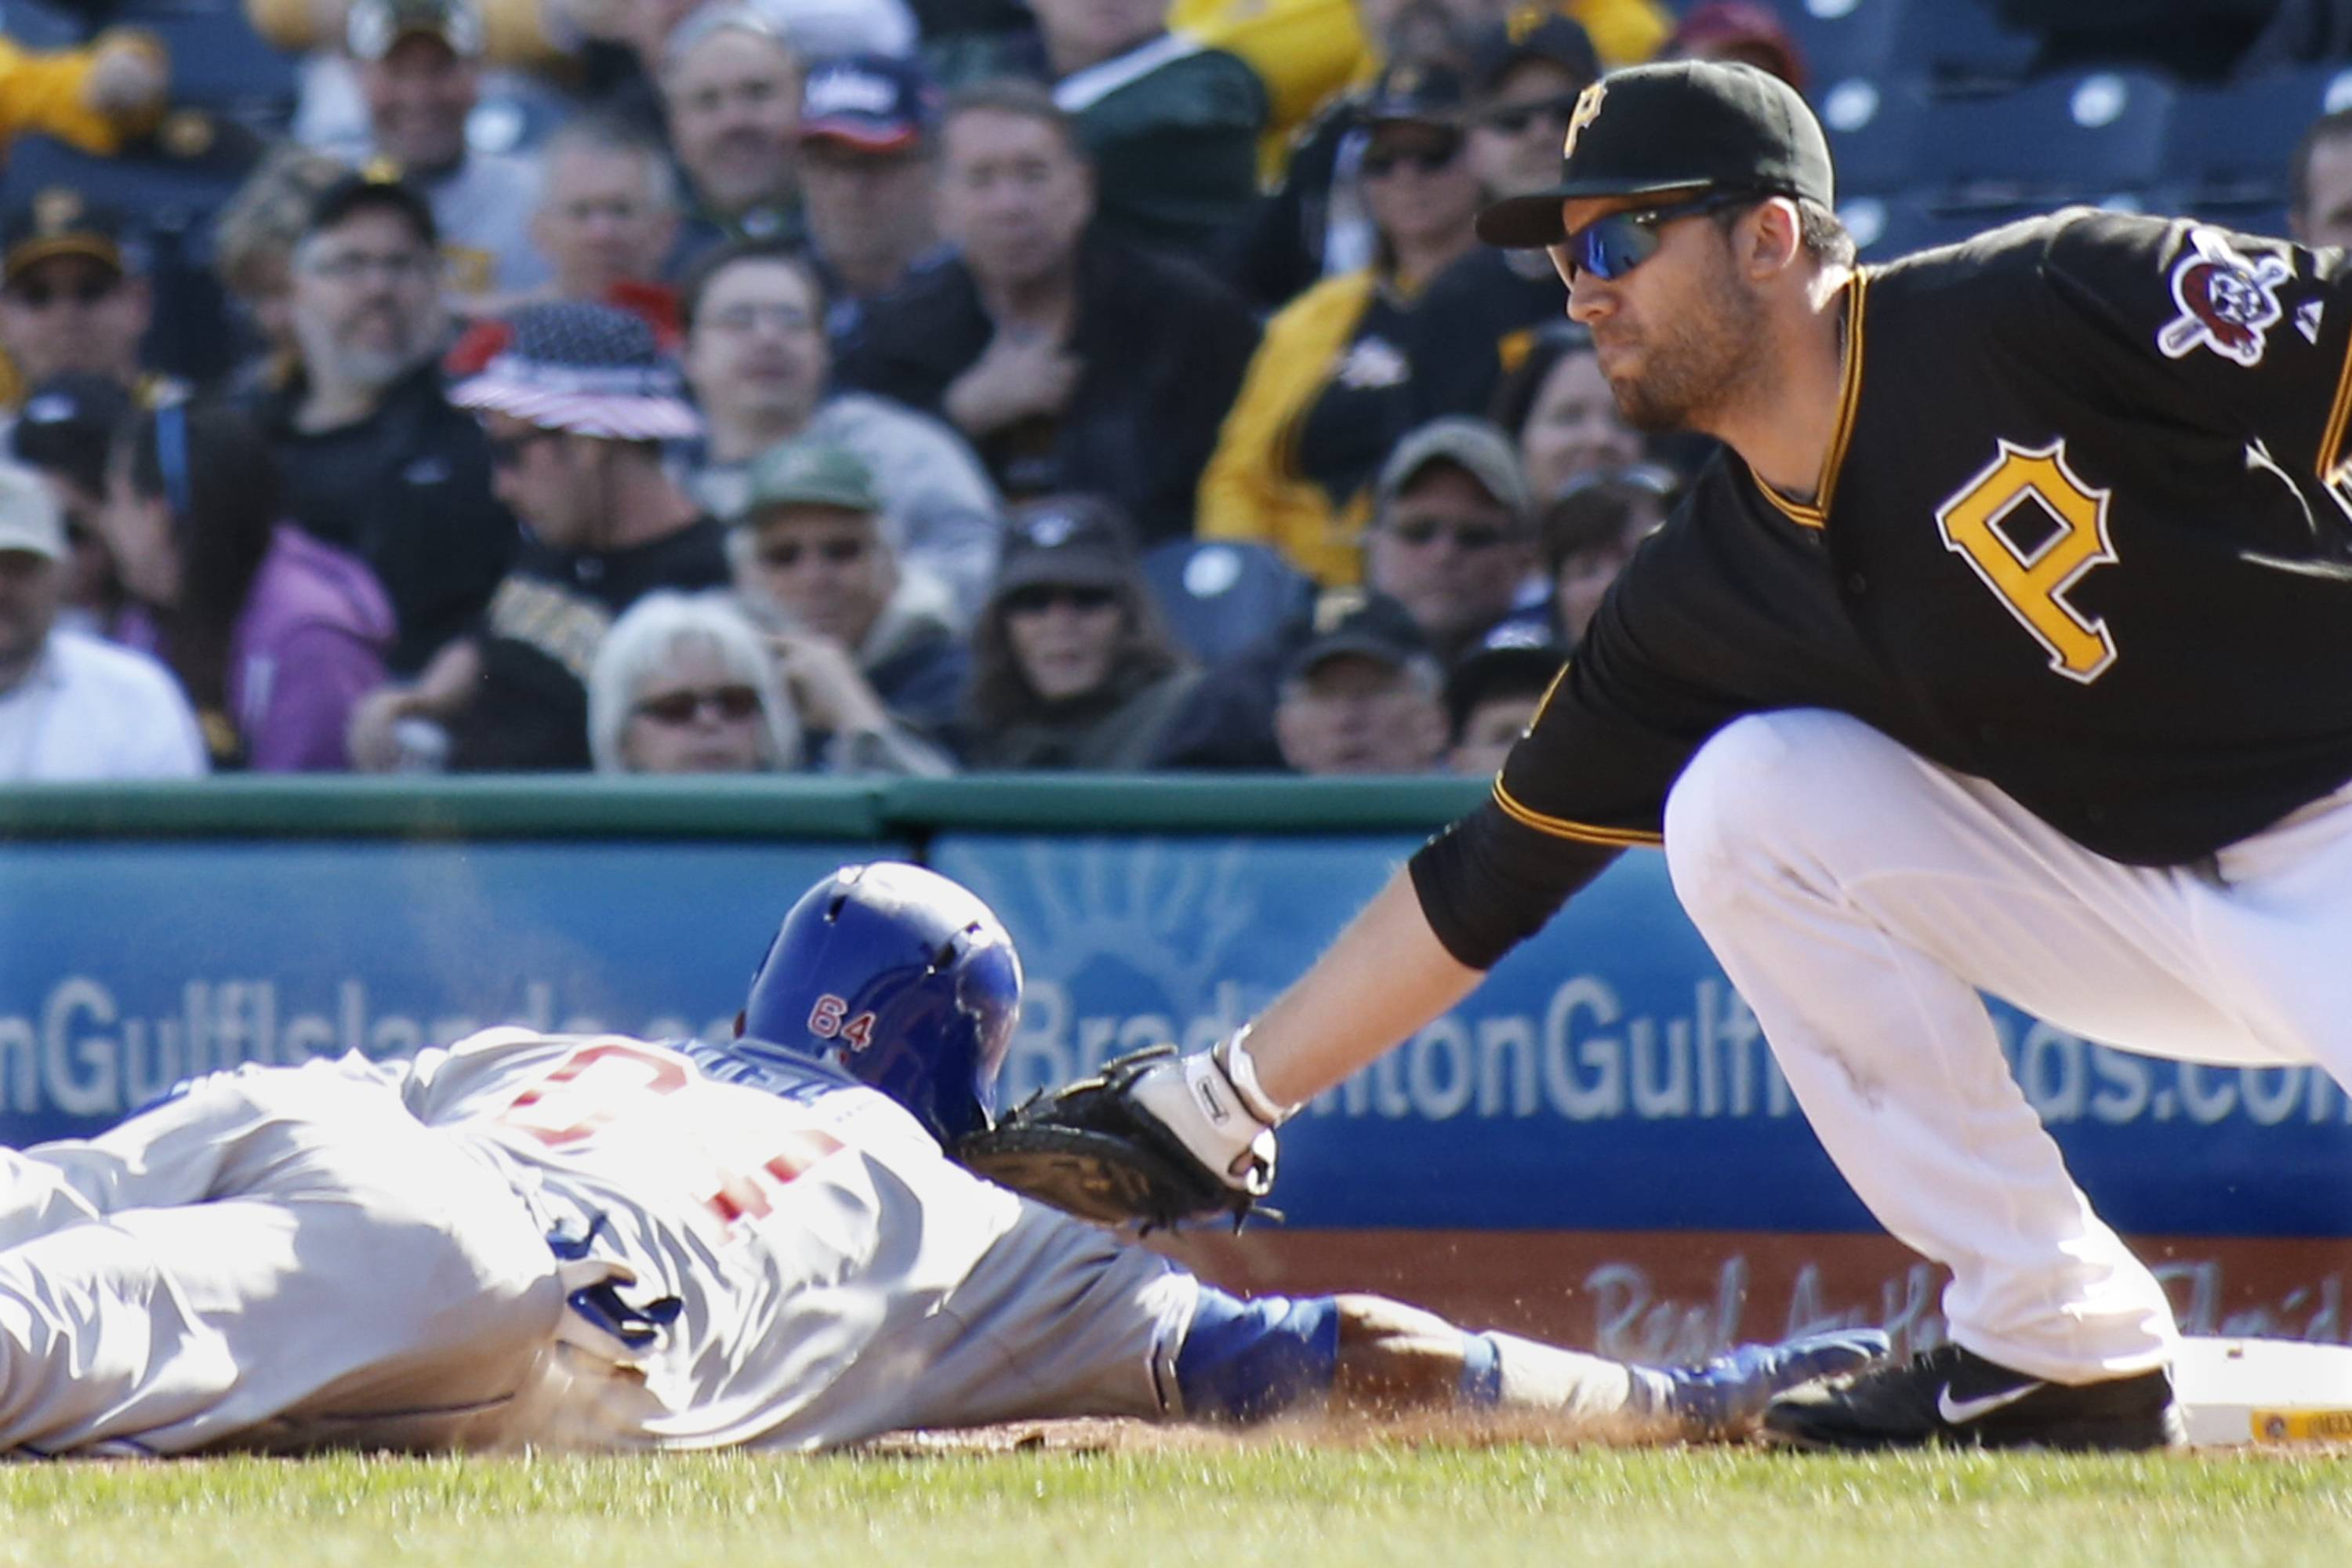 Pittsburgh Pirates first baseman Travis Ishikawa, right, reaches to tag Chicago Cubs Emilio Bonifacio as he dives back to first on a pickoff attempt in the 10th inning Monday in Pittsburgh. Bonifacio was initially called safe by the first base umpire, but the call was overturned on a review requested by manager Clint Hurdle.